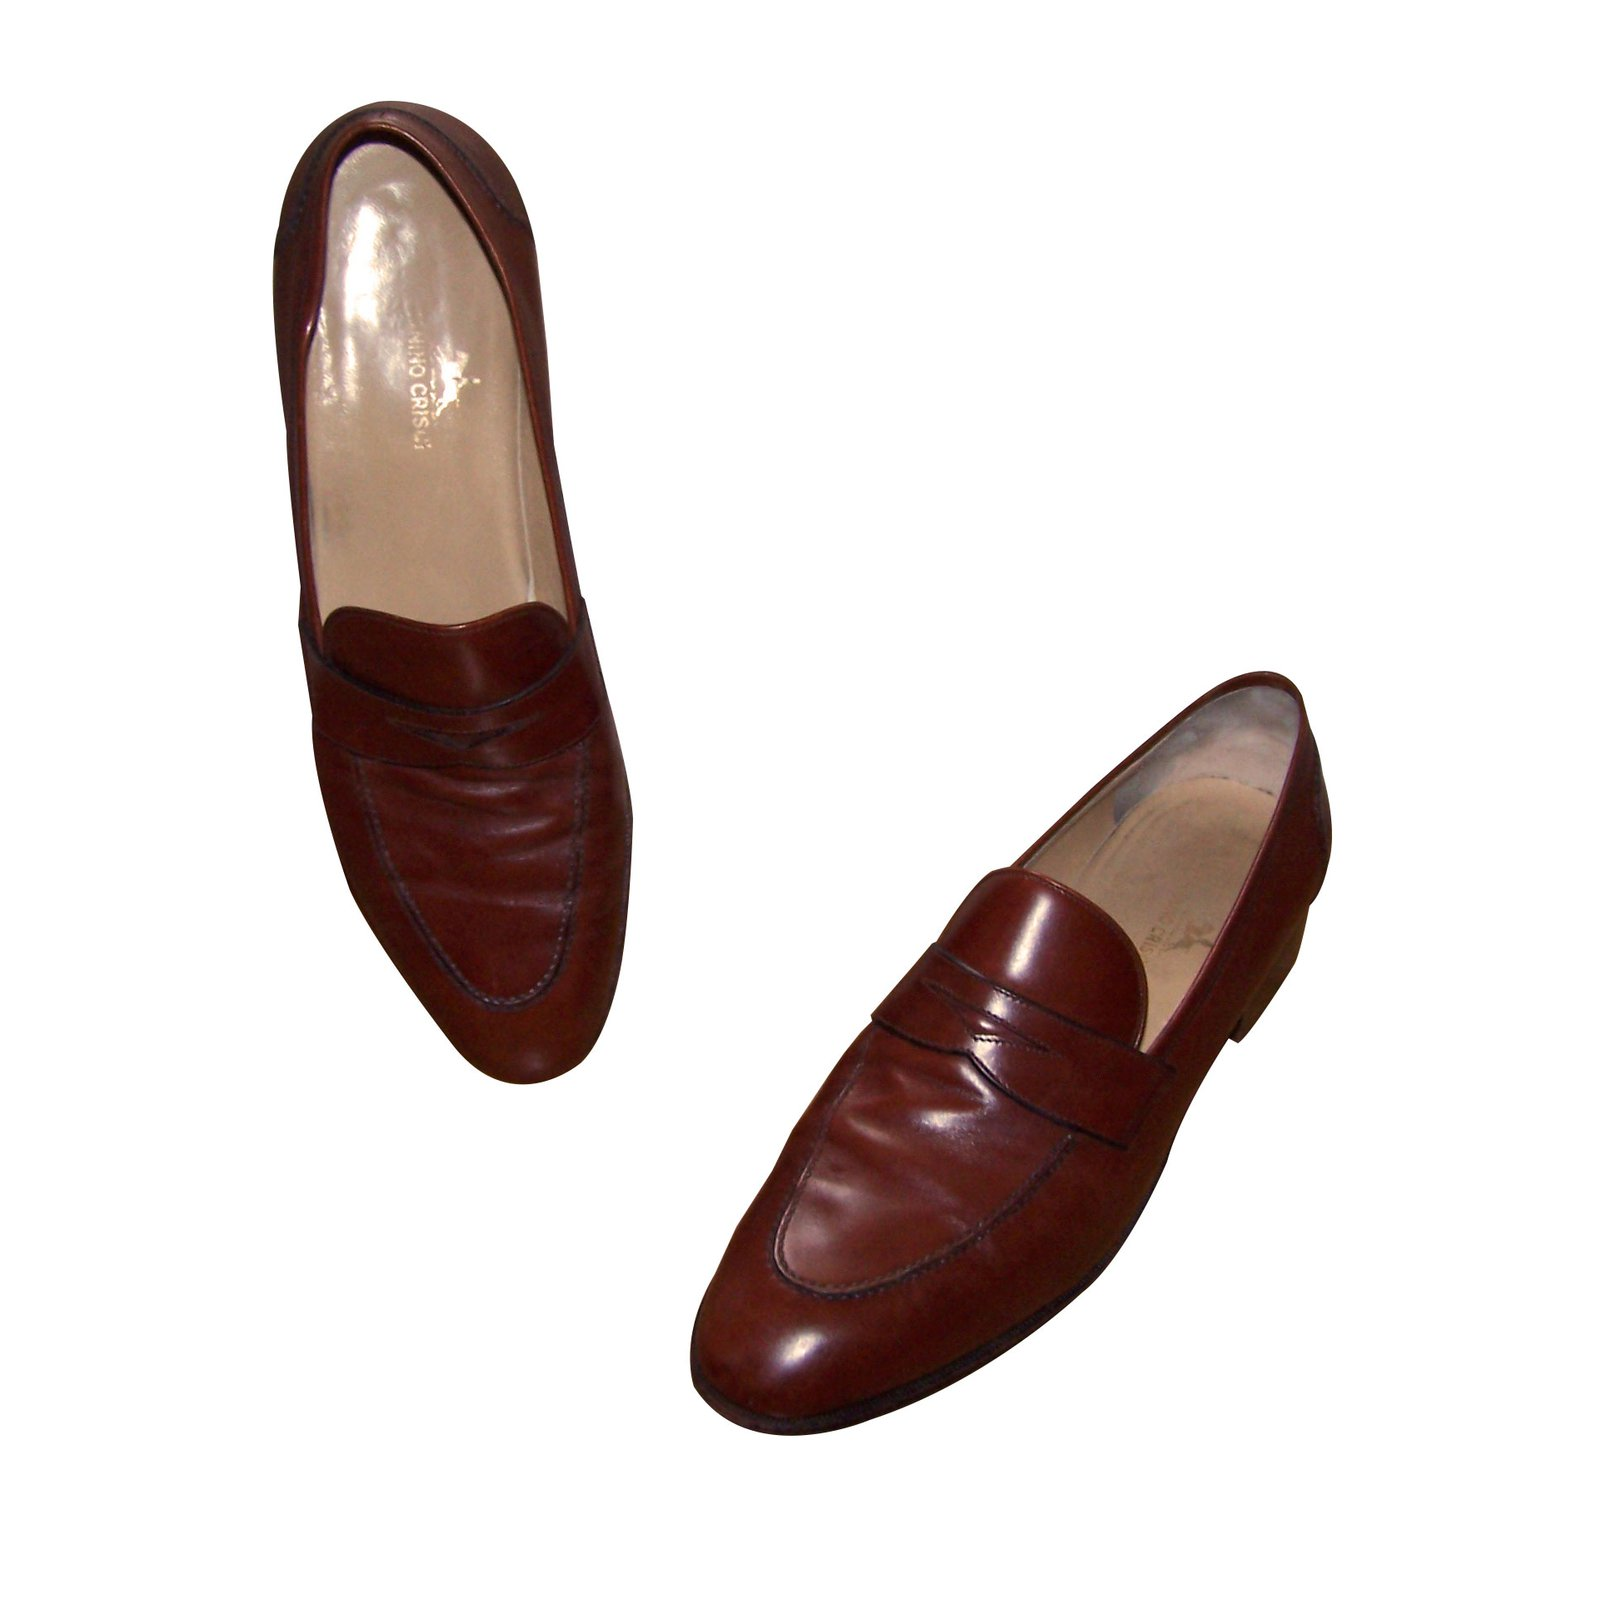 Tanino Crisci Loafers Slip ons Loafers Slip ons Leather Cognac ref.61856